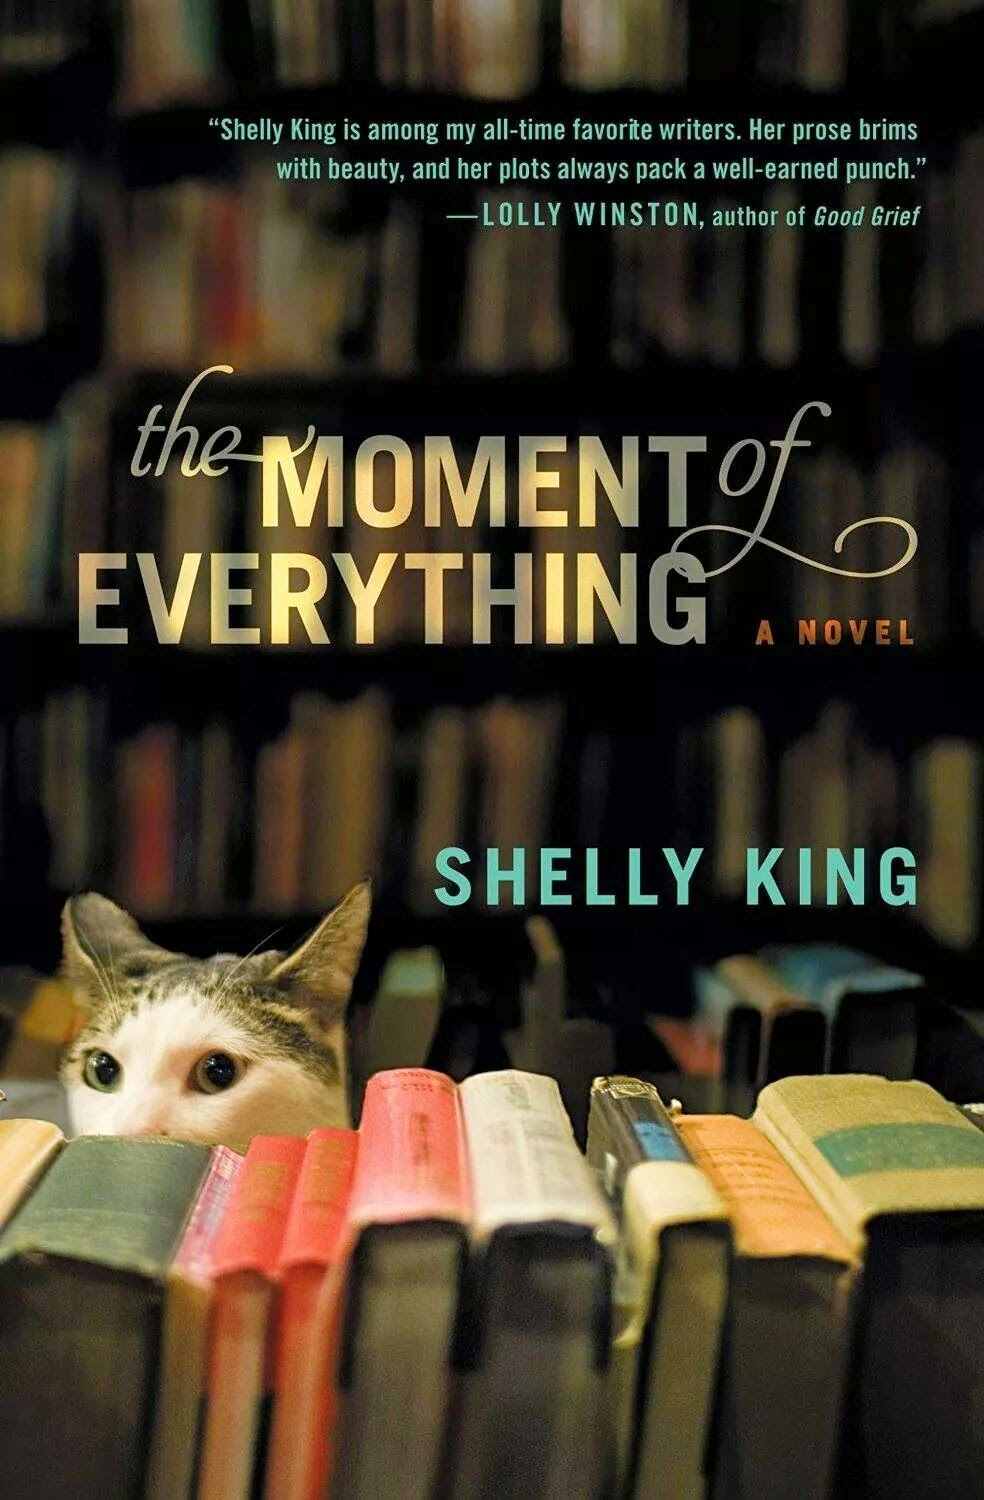 http://leden-des-reves.blogspot.fr/2015/01/the-moment-of-everything-shelly-king.html